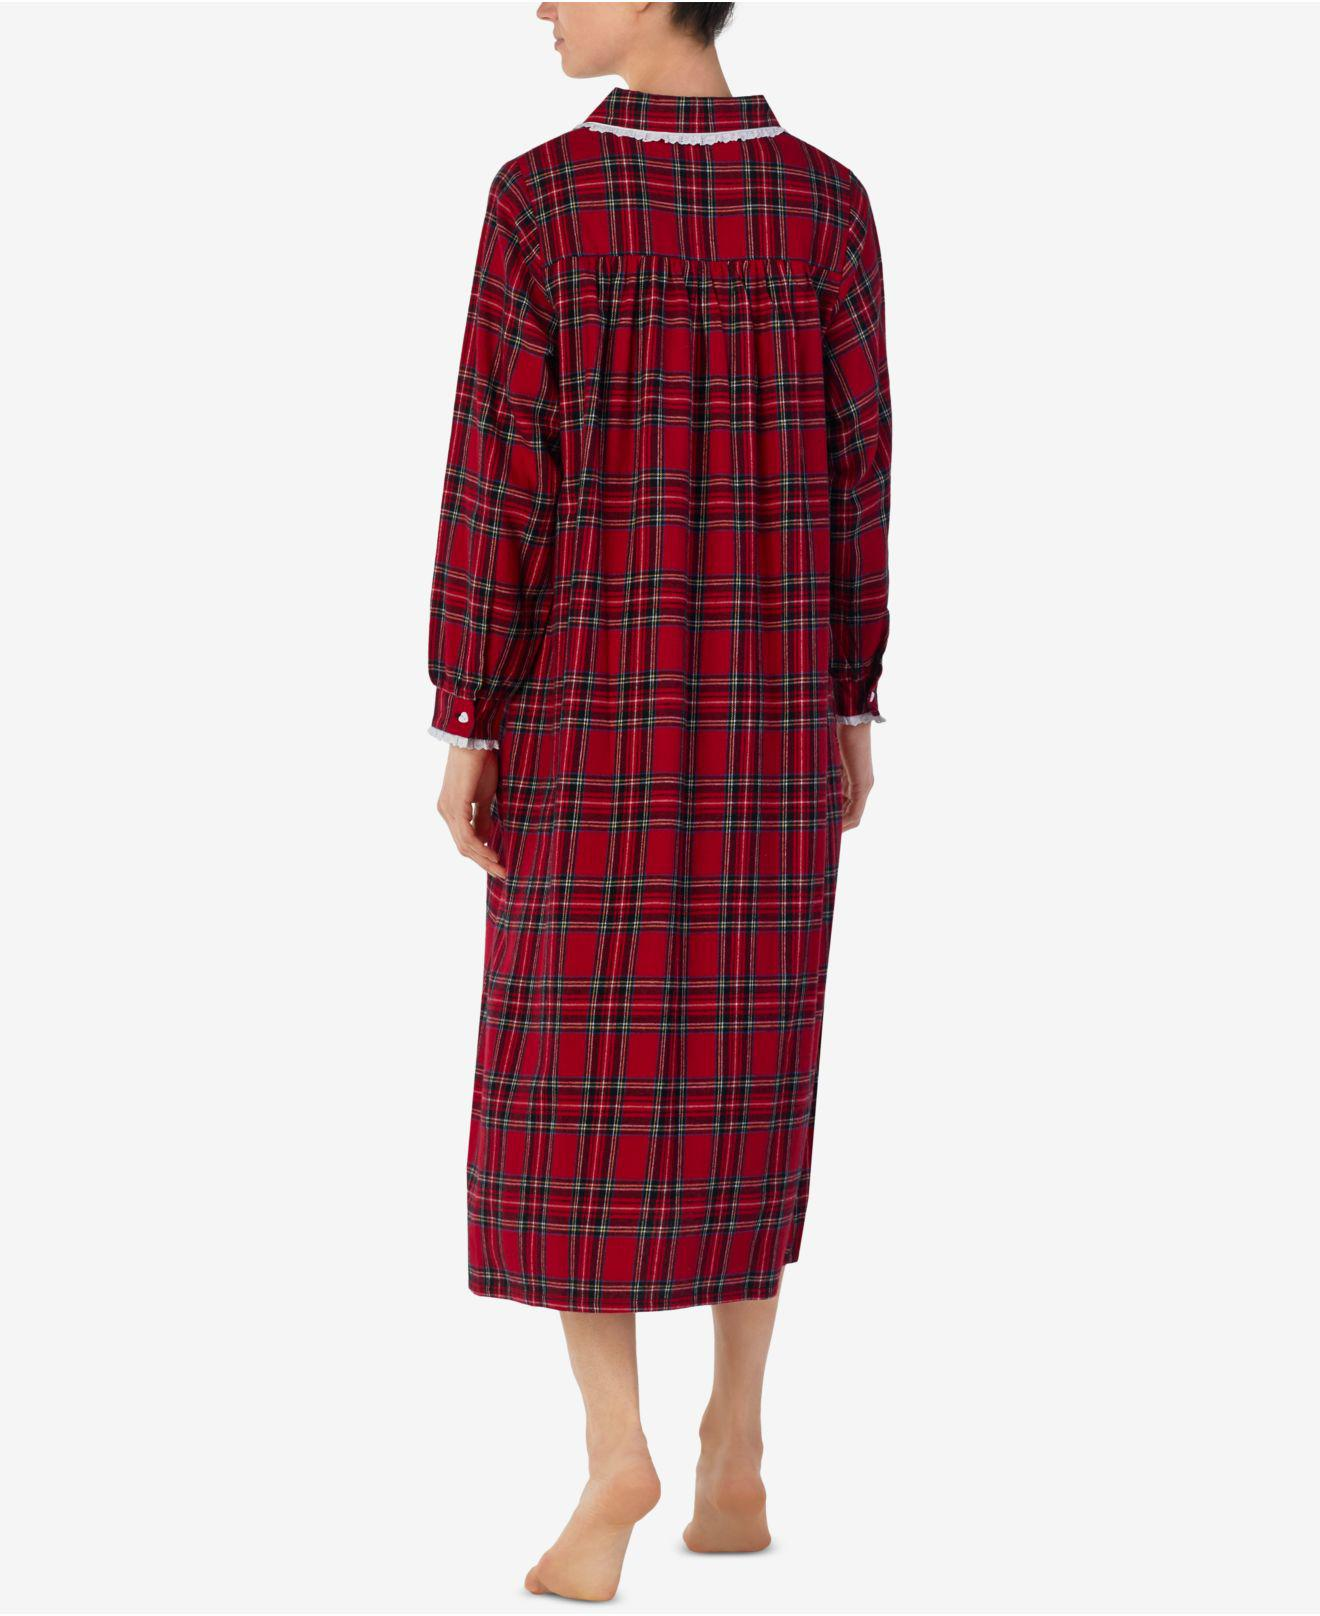 f75321a3e8 Lyst - Lanz of Salzburg Printed Cotton Flannel Nightgown in Red - Save 6%